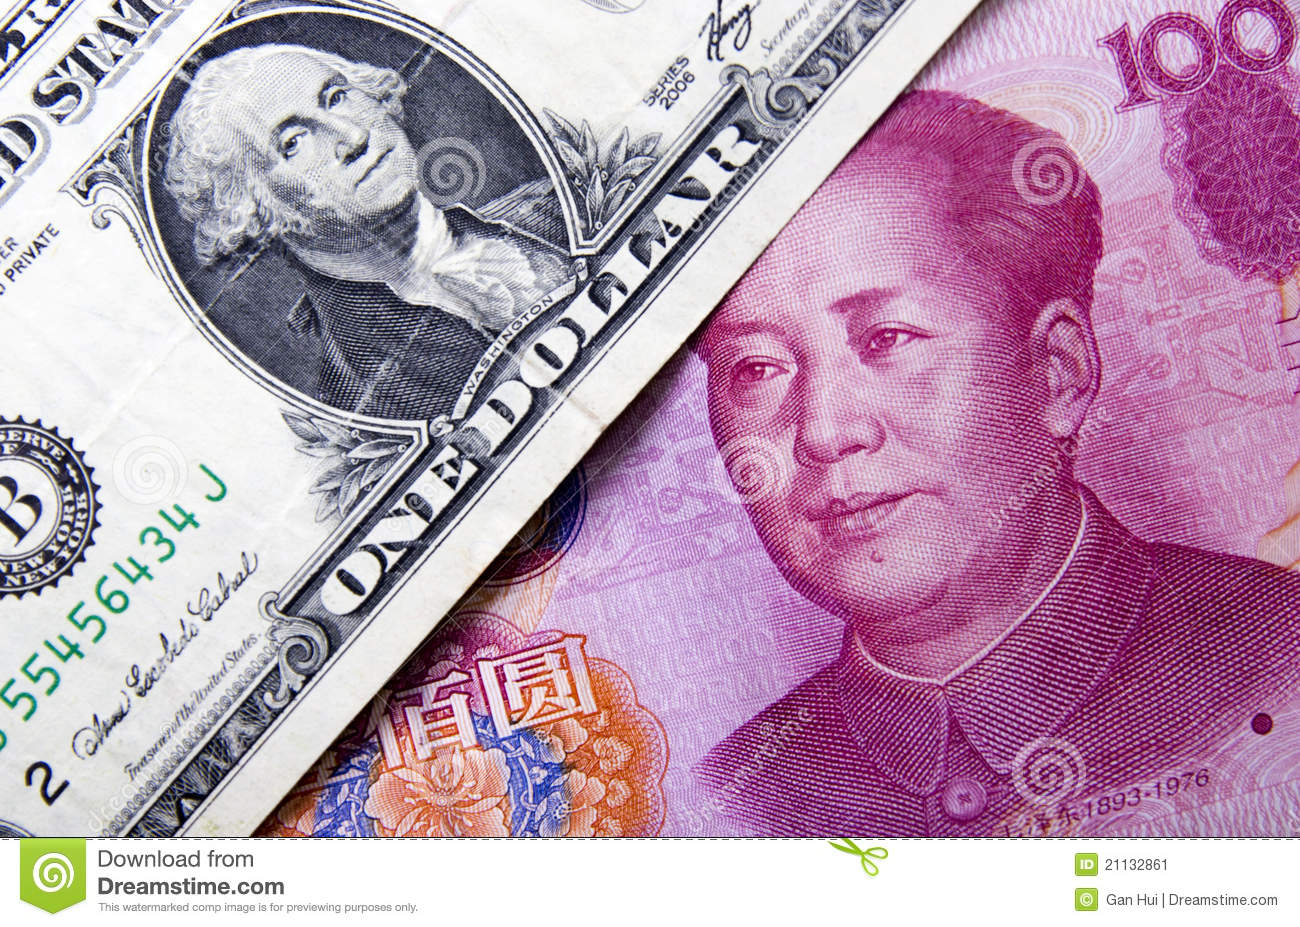 Yet prior to splashing out in beijing, it is useful to know some basics about the chinese currency yuan (or renminbi)